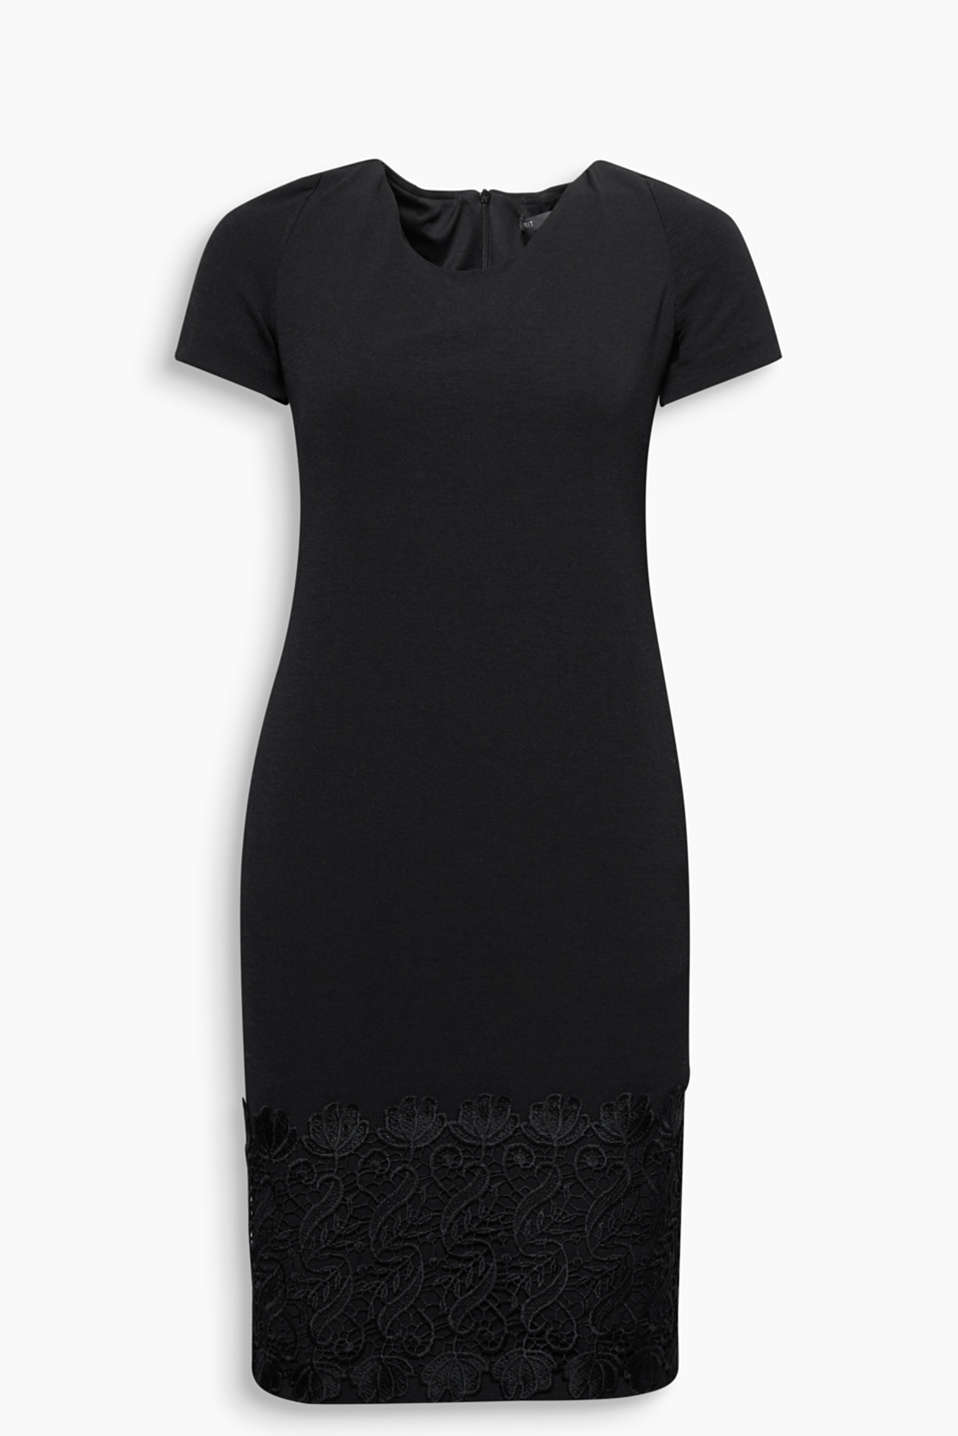 Save the best for last: chic jersey sheath dress with a deep lace trim around the bottom hem